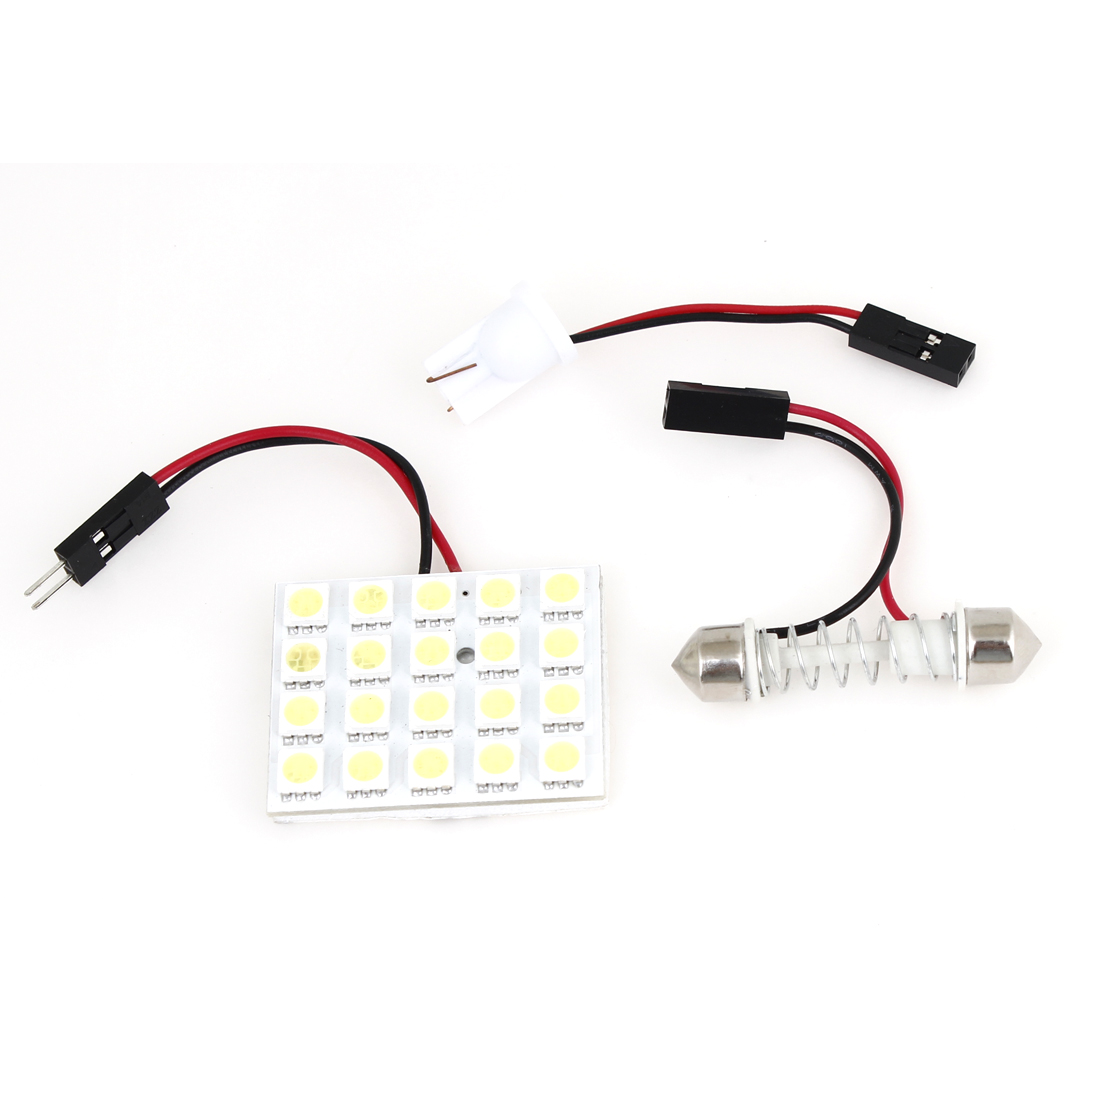 White 20 5050 SMD Dome LED Lamp Board + T10 Festoon Adapter for Auto Car